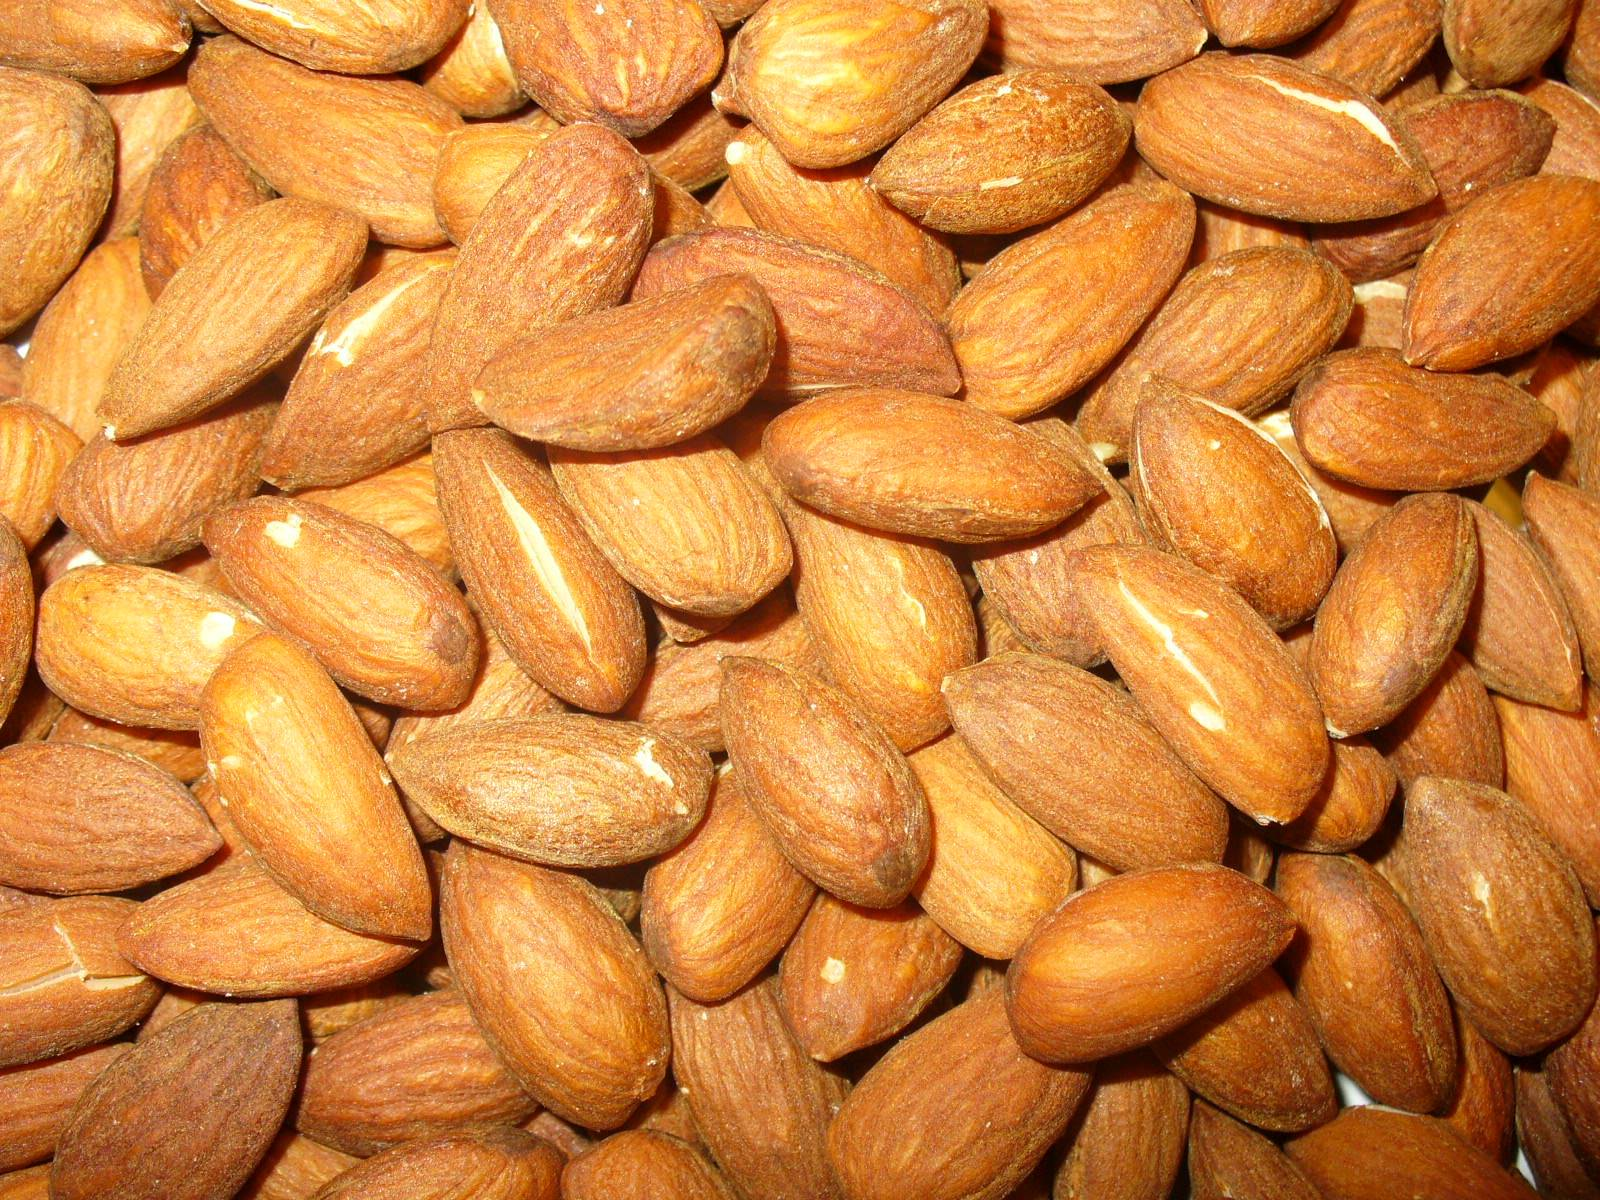 Almond Nuts, Best Quality Almond Nuts, Grade A Almond Nuts